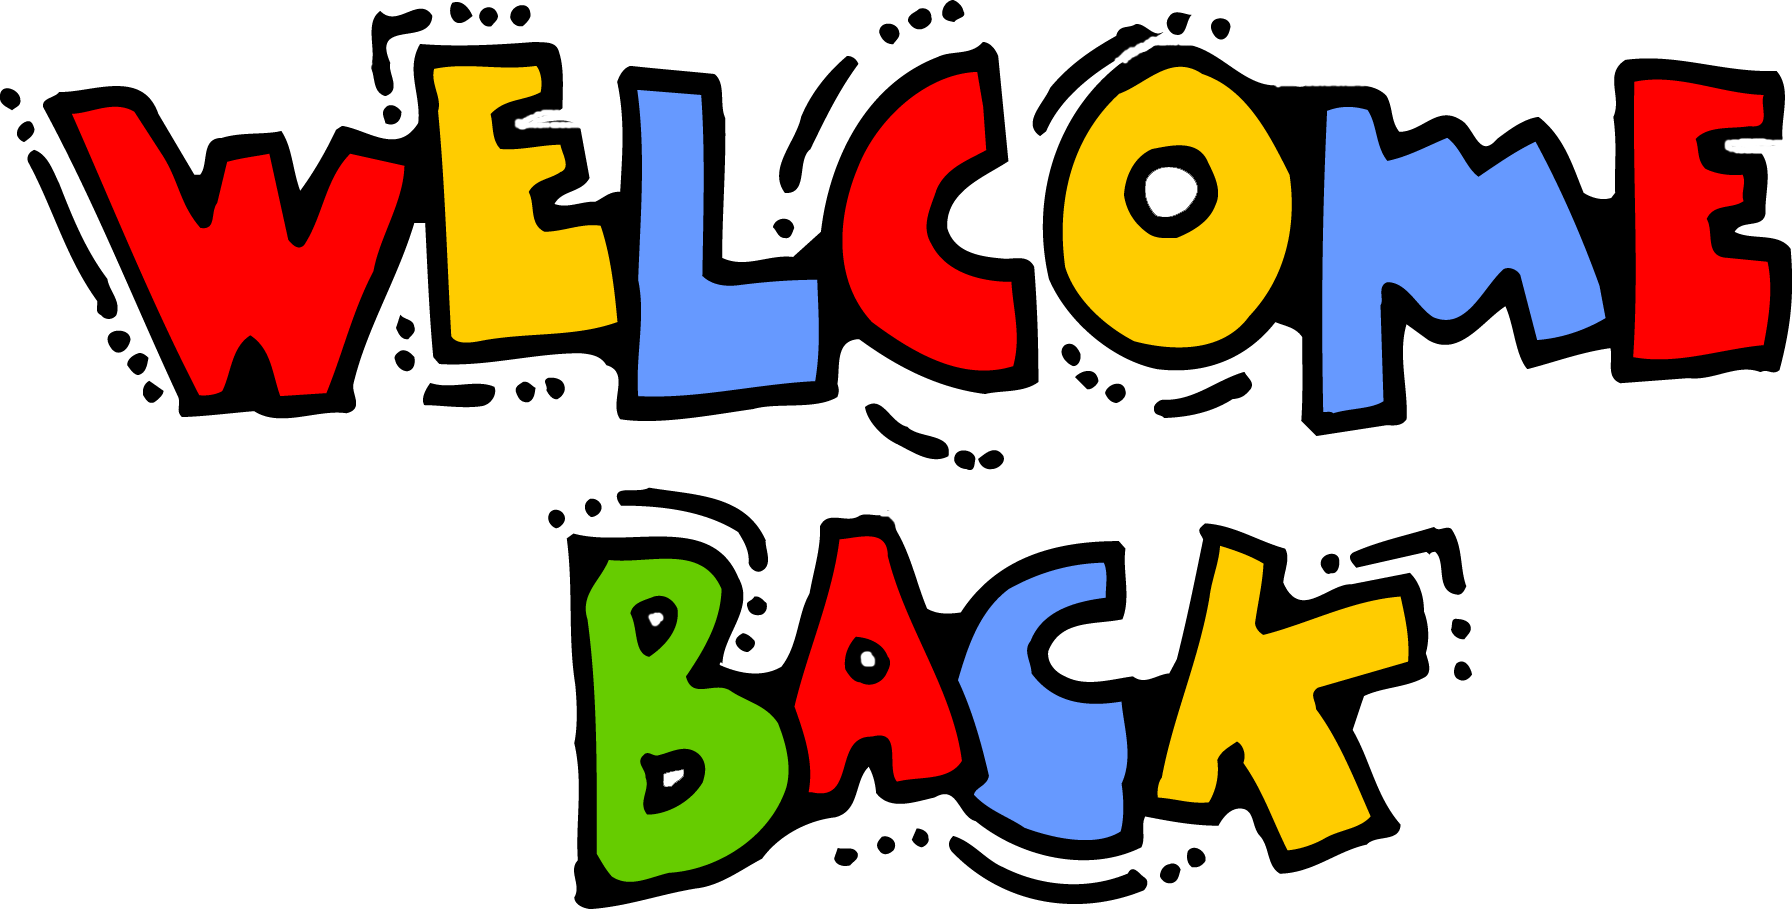 Amonday clipart welcome back Back Animated clipart 1792x909 welcome